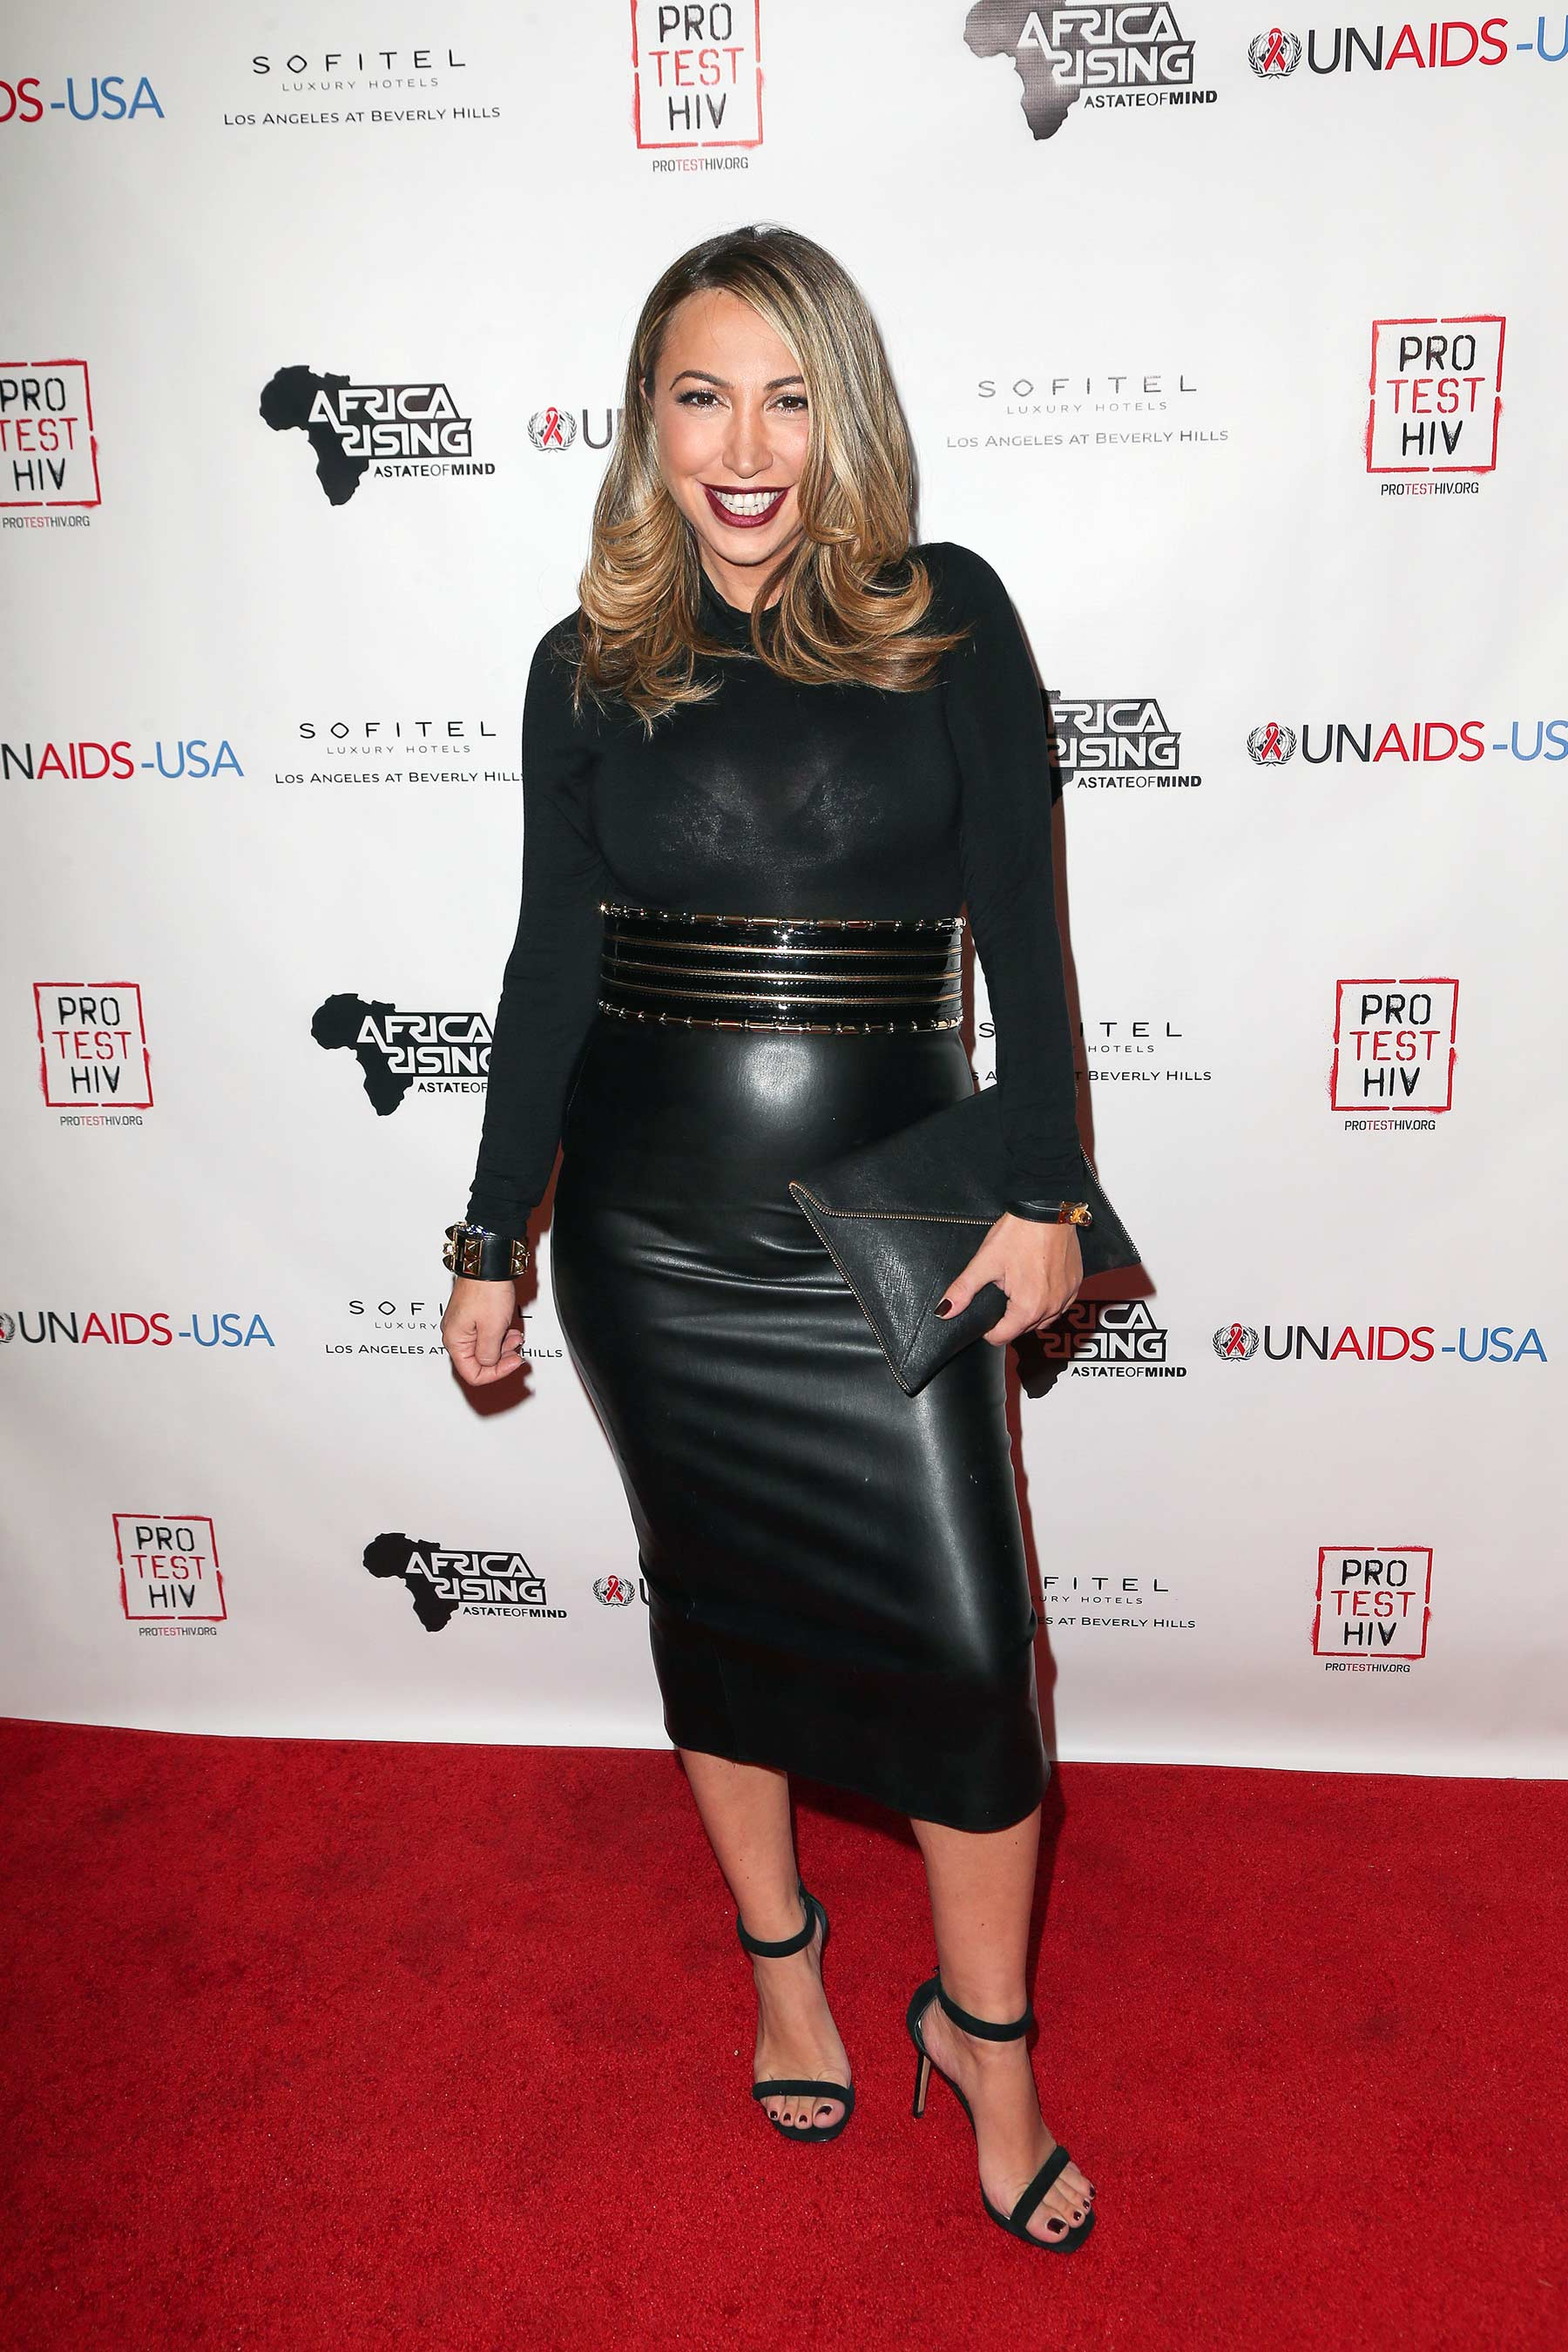 Diana Madison attends Inaugural World AIDS Day Benefit